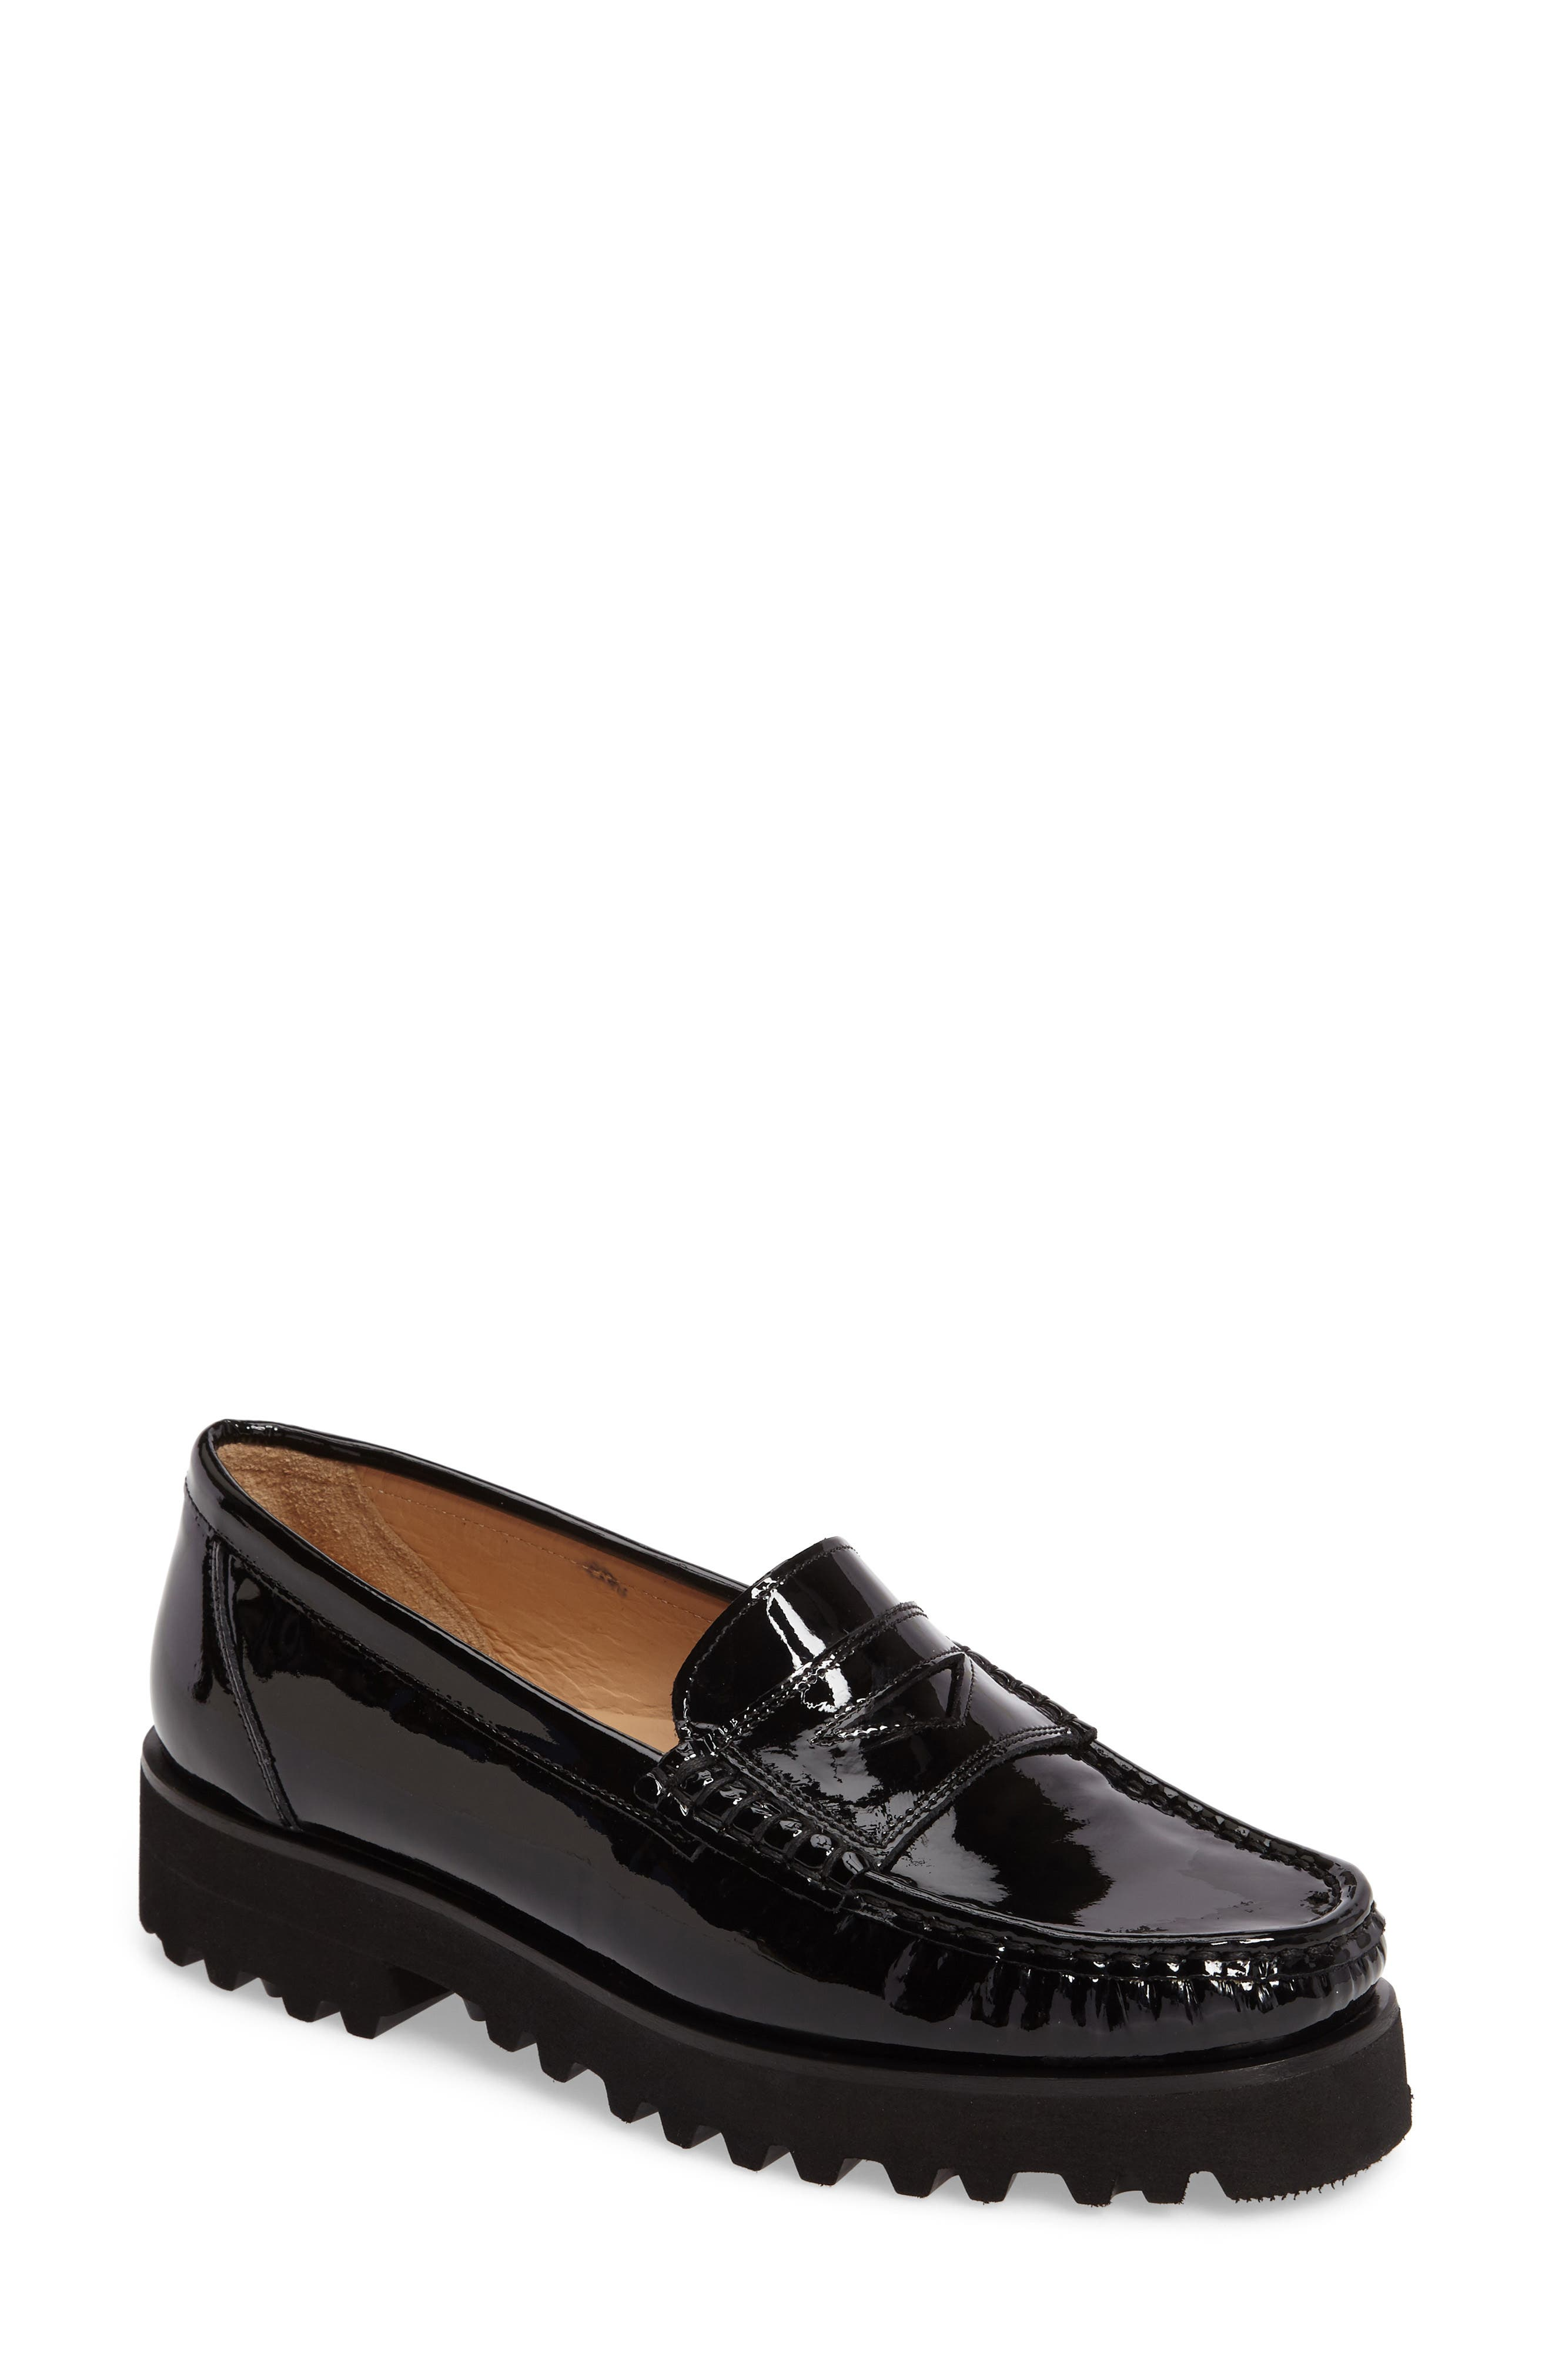 Rita Platform Penny Loafer,                         Main,                         color, Onyx Patent